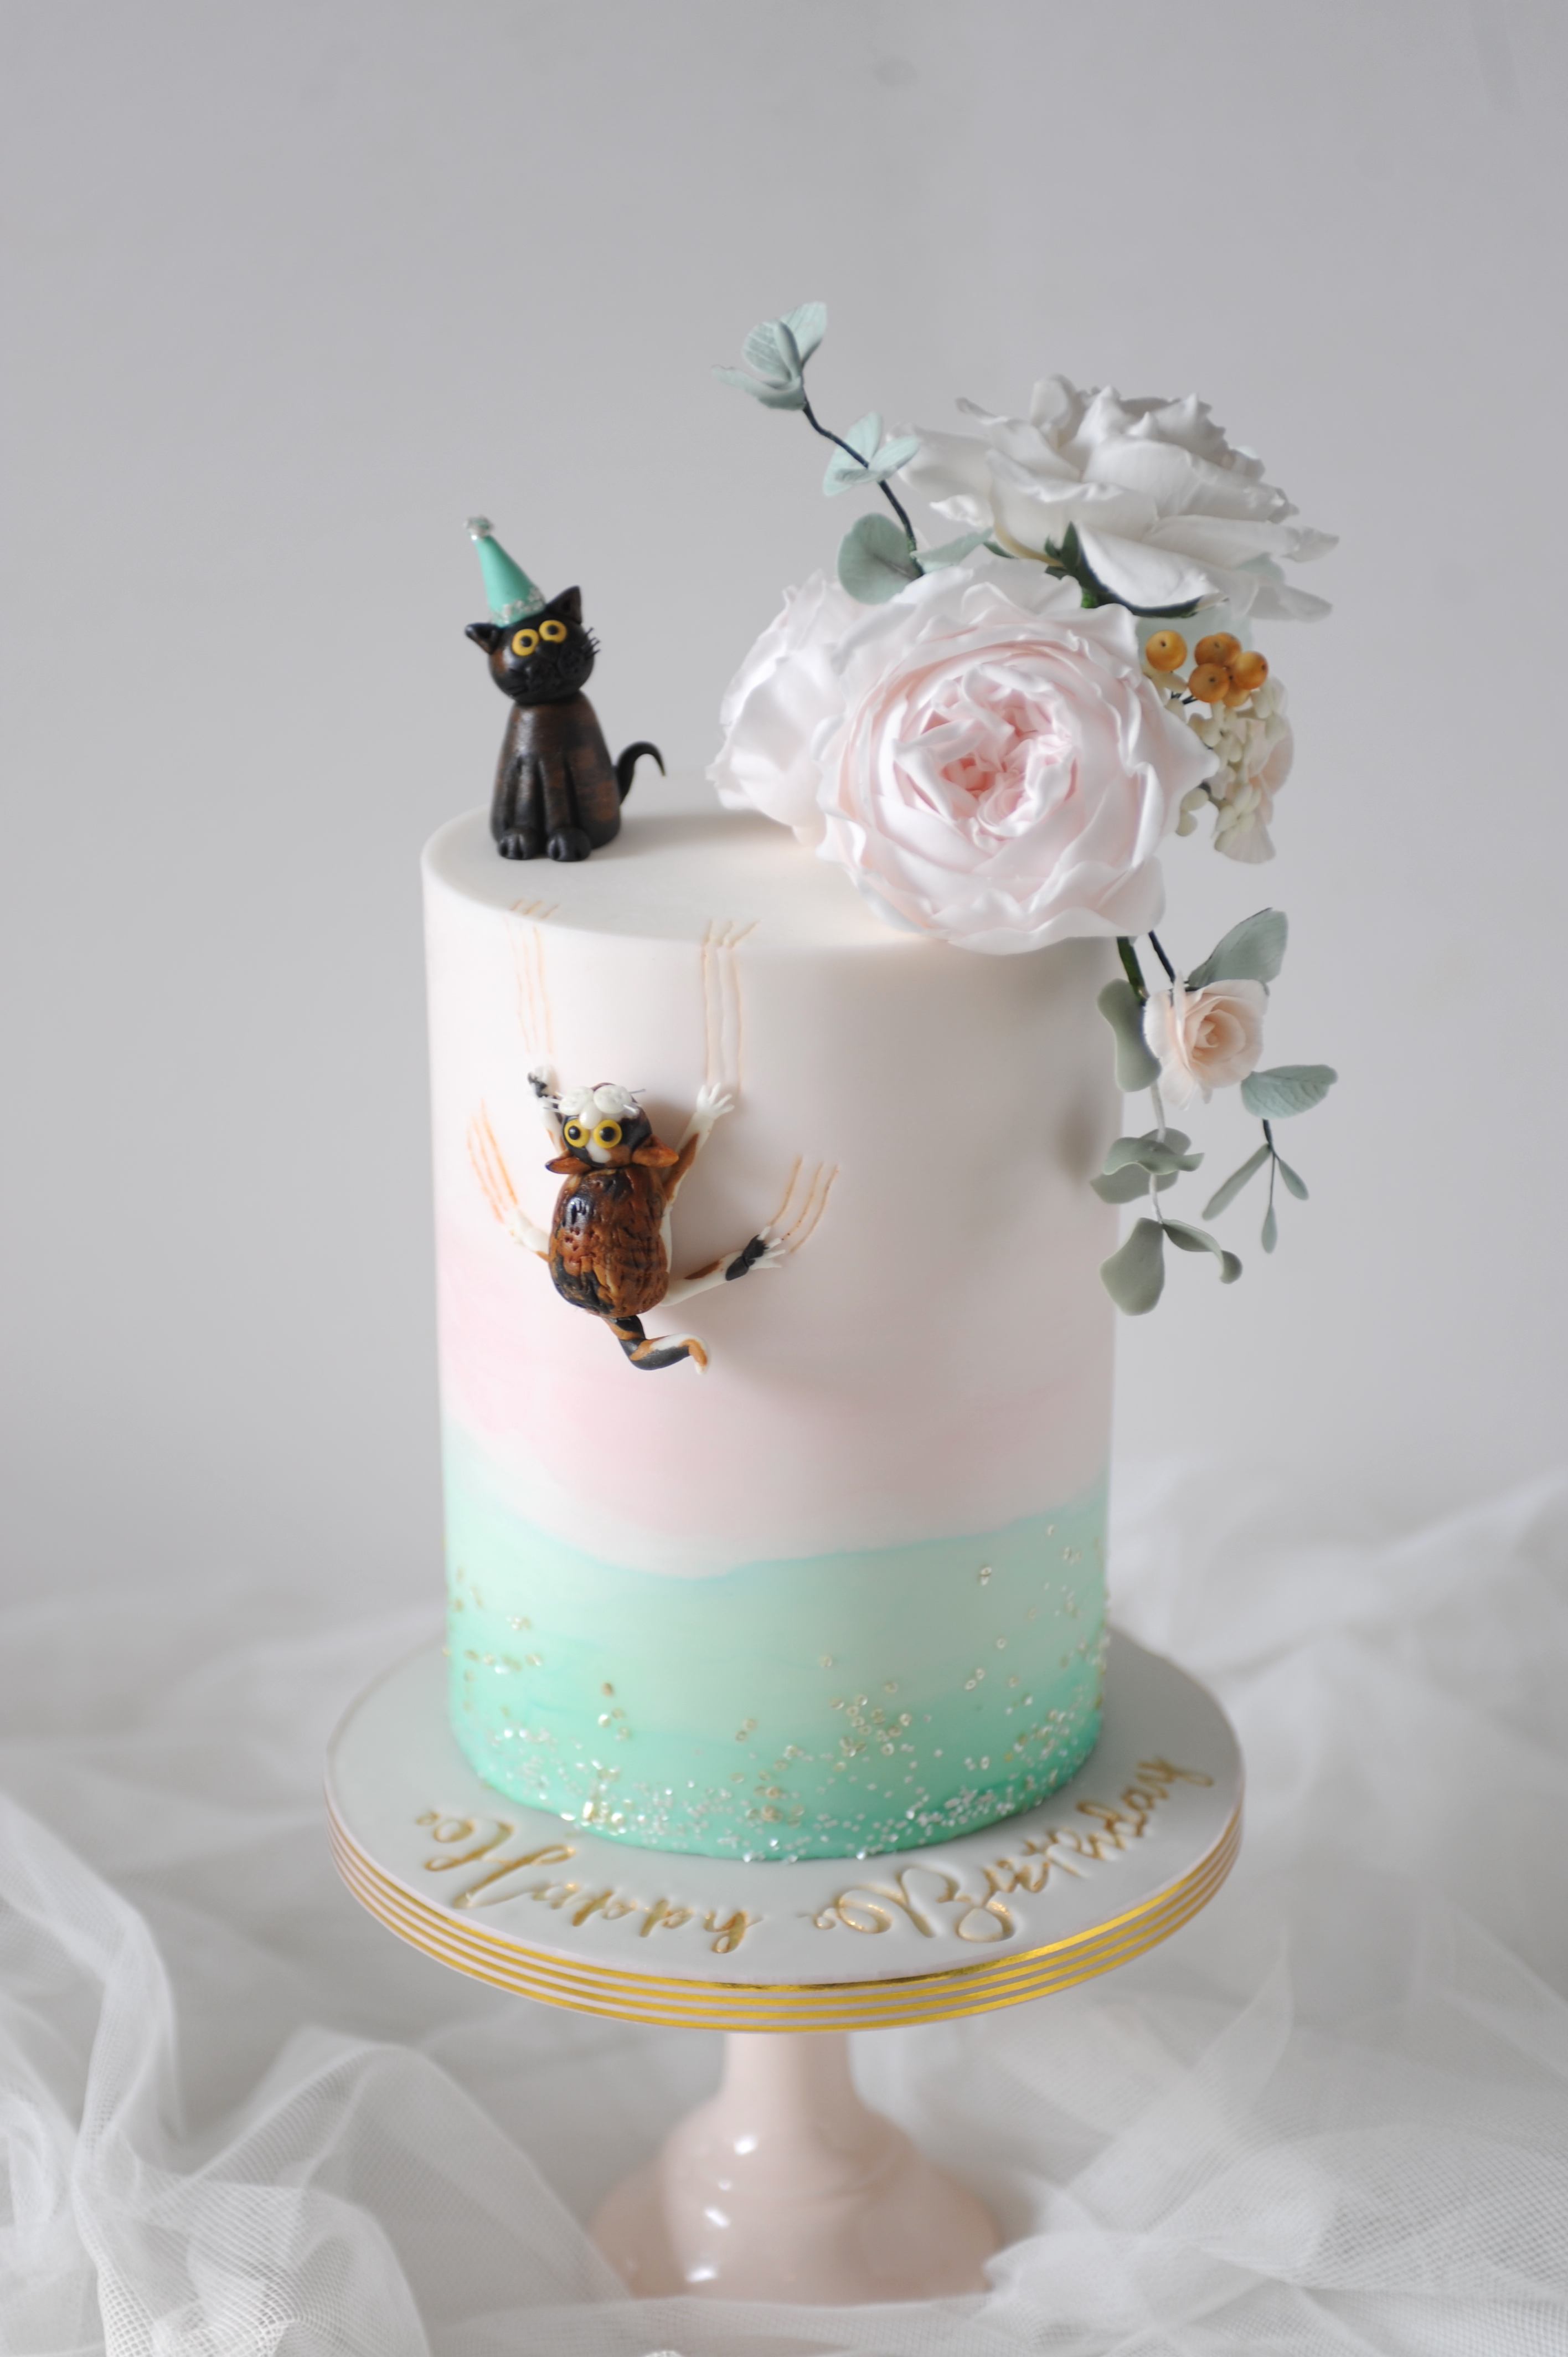 Cats & flowers cake